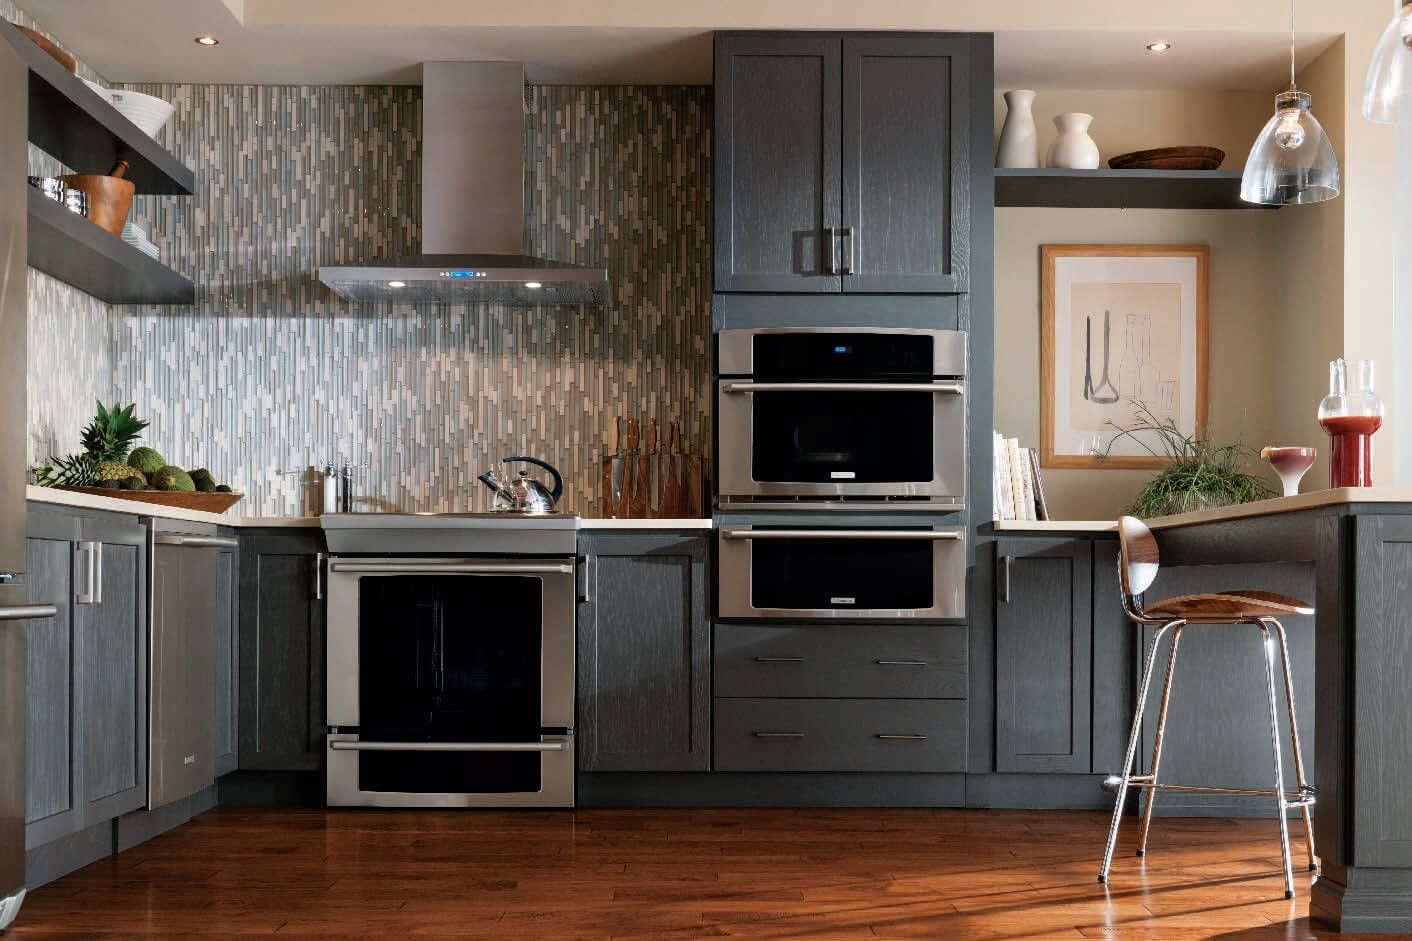 8 Kitchen Design Trends That Will Last Into 2020 And Beyond Horner Millwork In 2020 Kitchen Cabinetry Design Kitchen Cabinet Trends Kitchen Trends